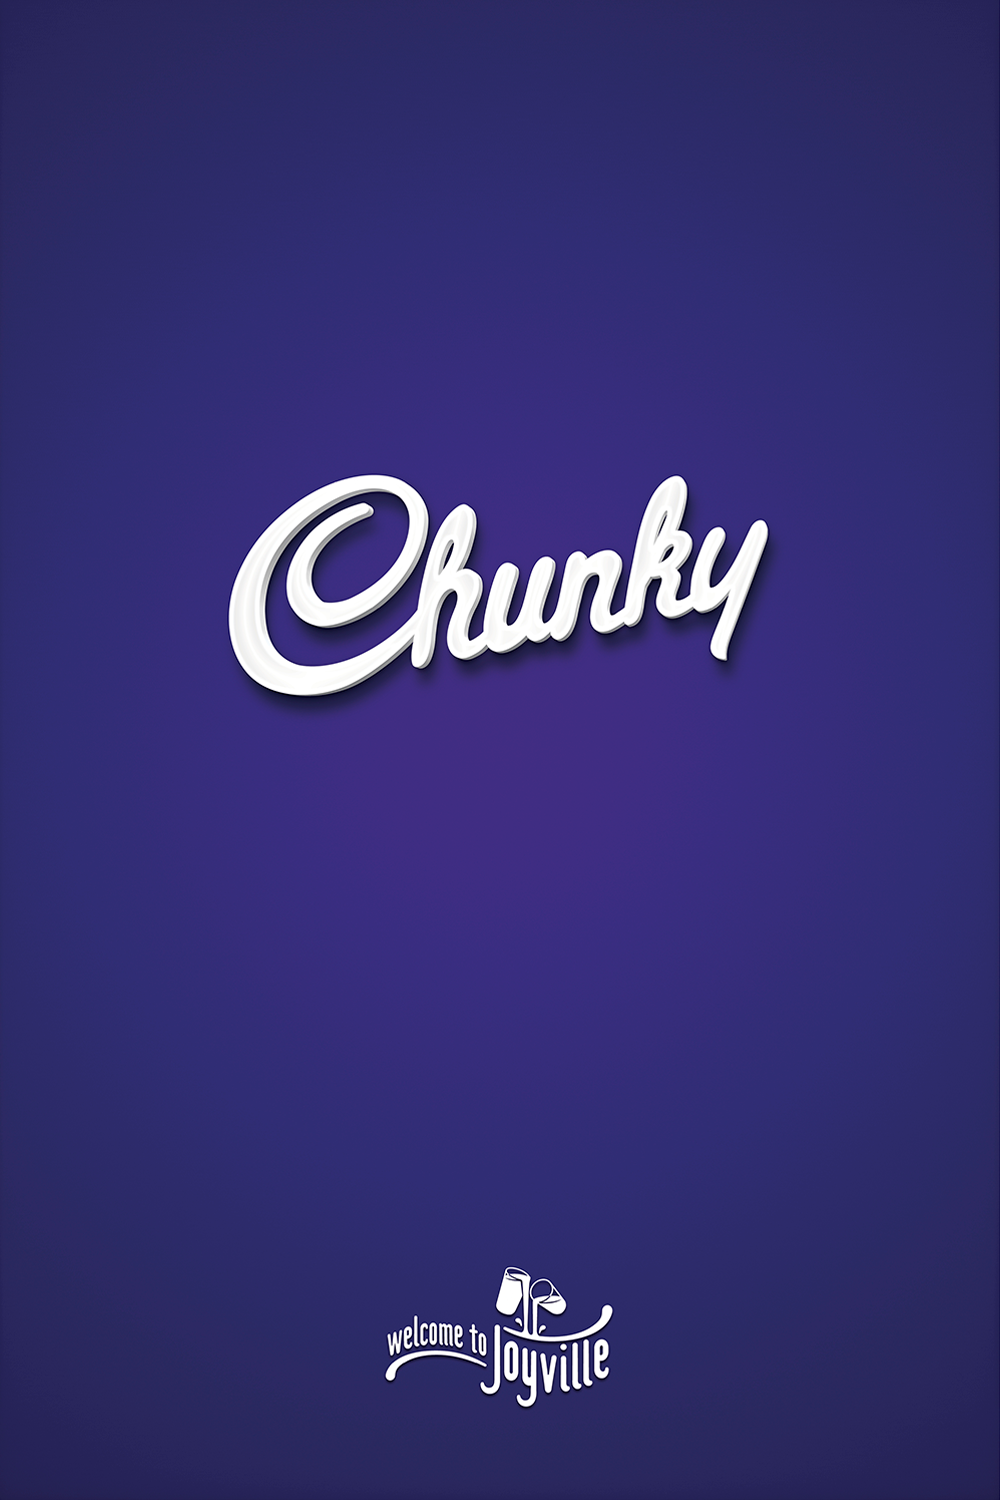 Cadbury_Unbranded_Chunky.png